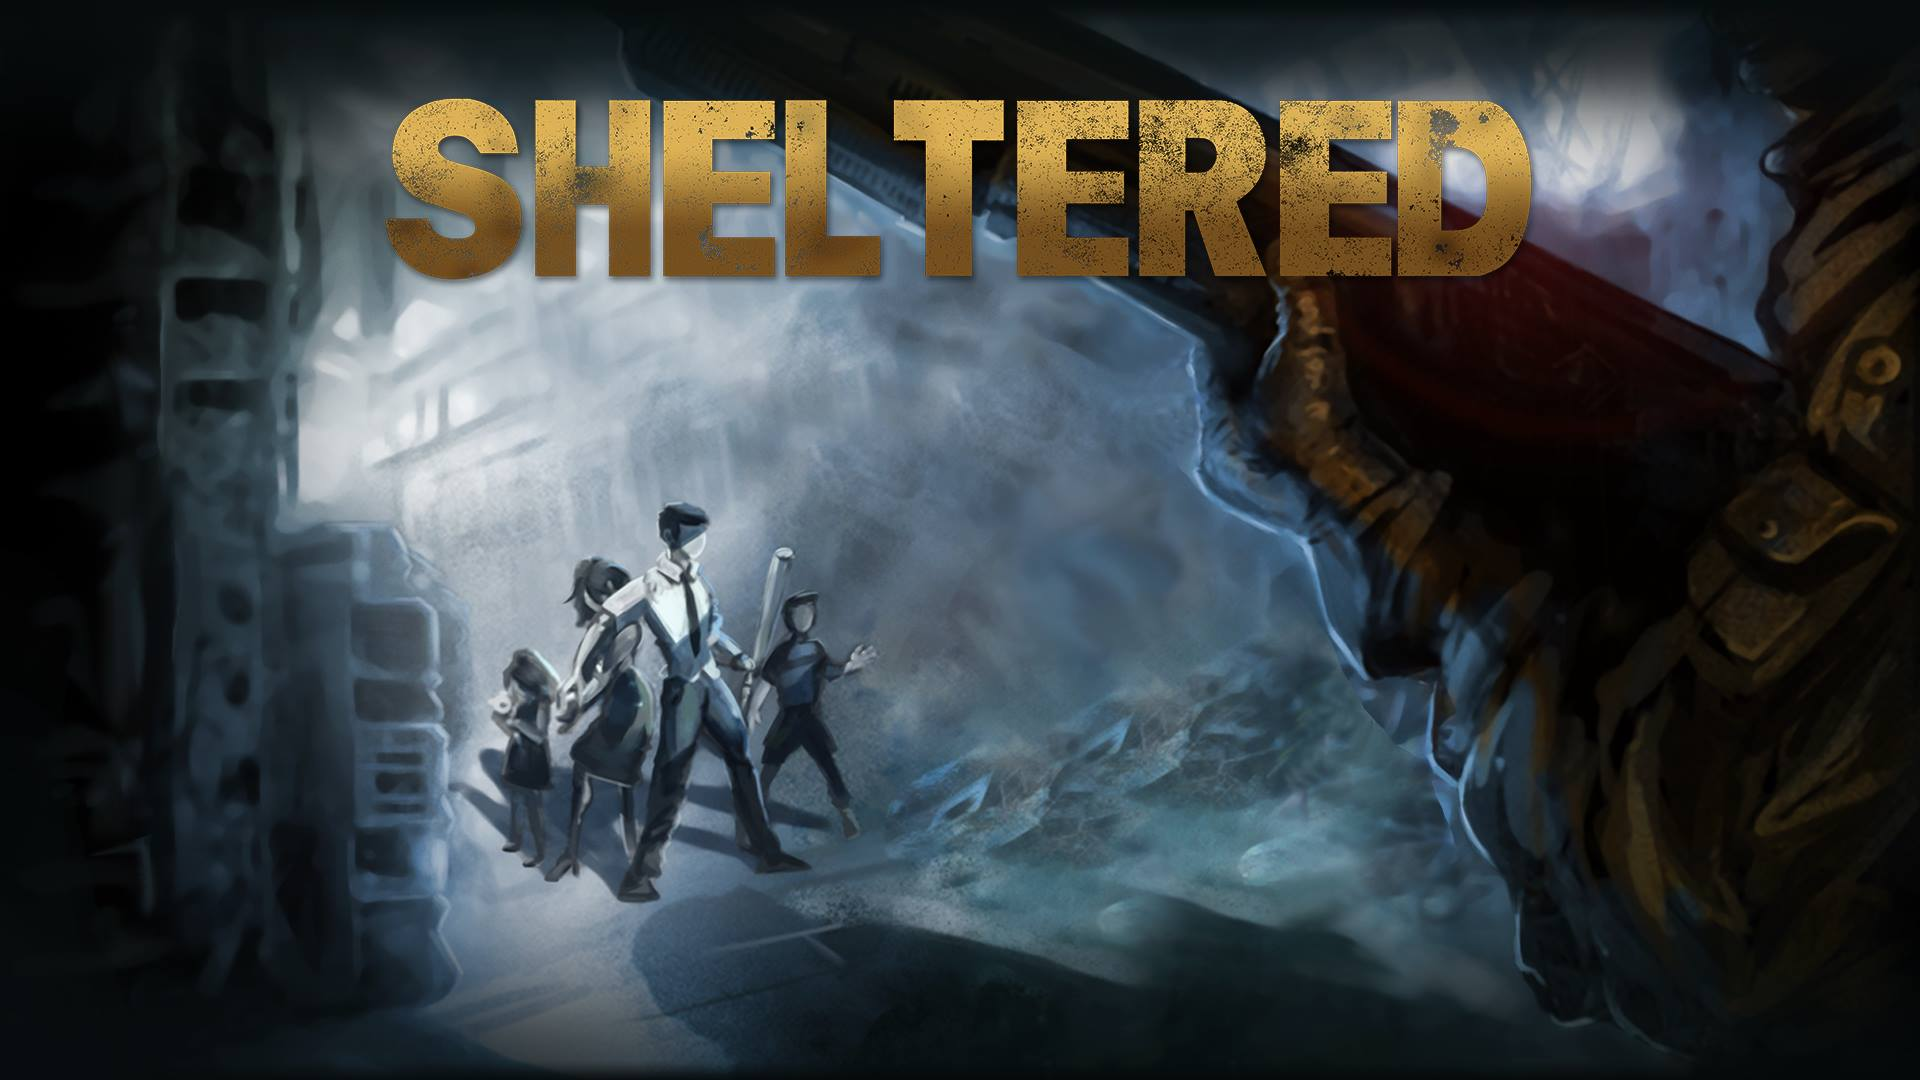 New Ps4 Games Coming Soon : Xbox and pc hit 'sheltered coming soon to ps horror